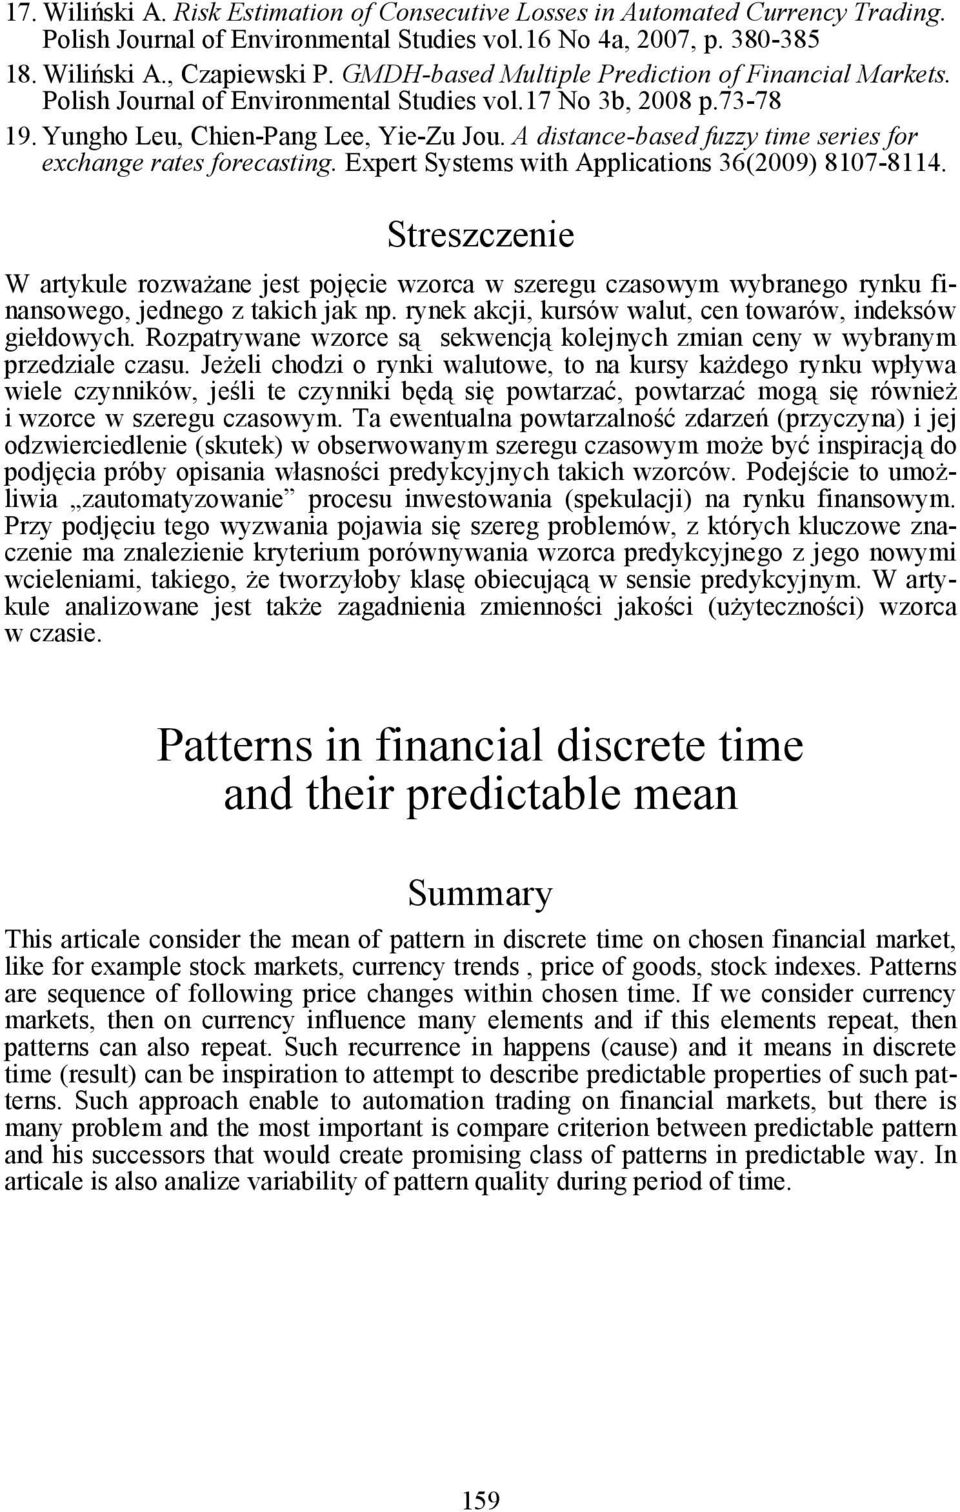 A distance-based fuzzy time series for exchange rates forecasting. Expert Systems with Applications 36(2009) 8107-8114.